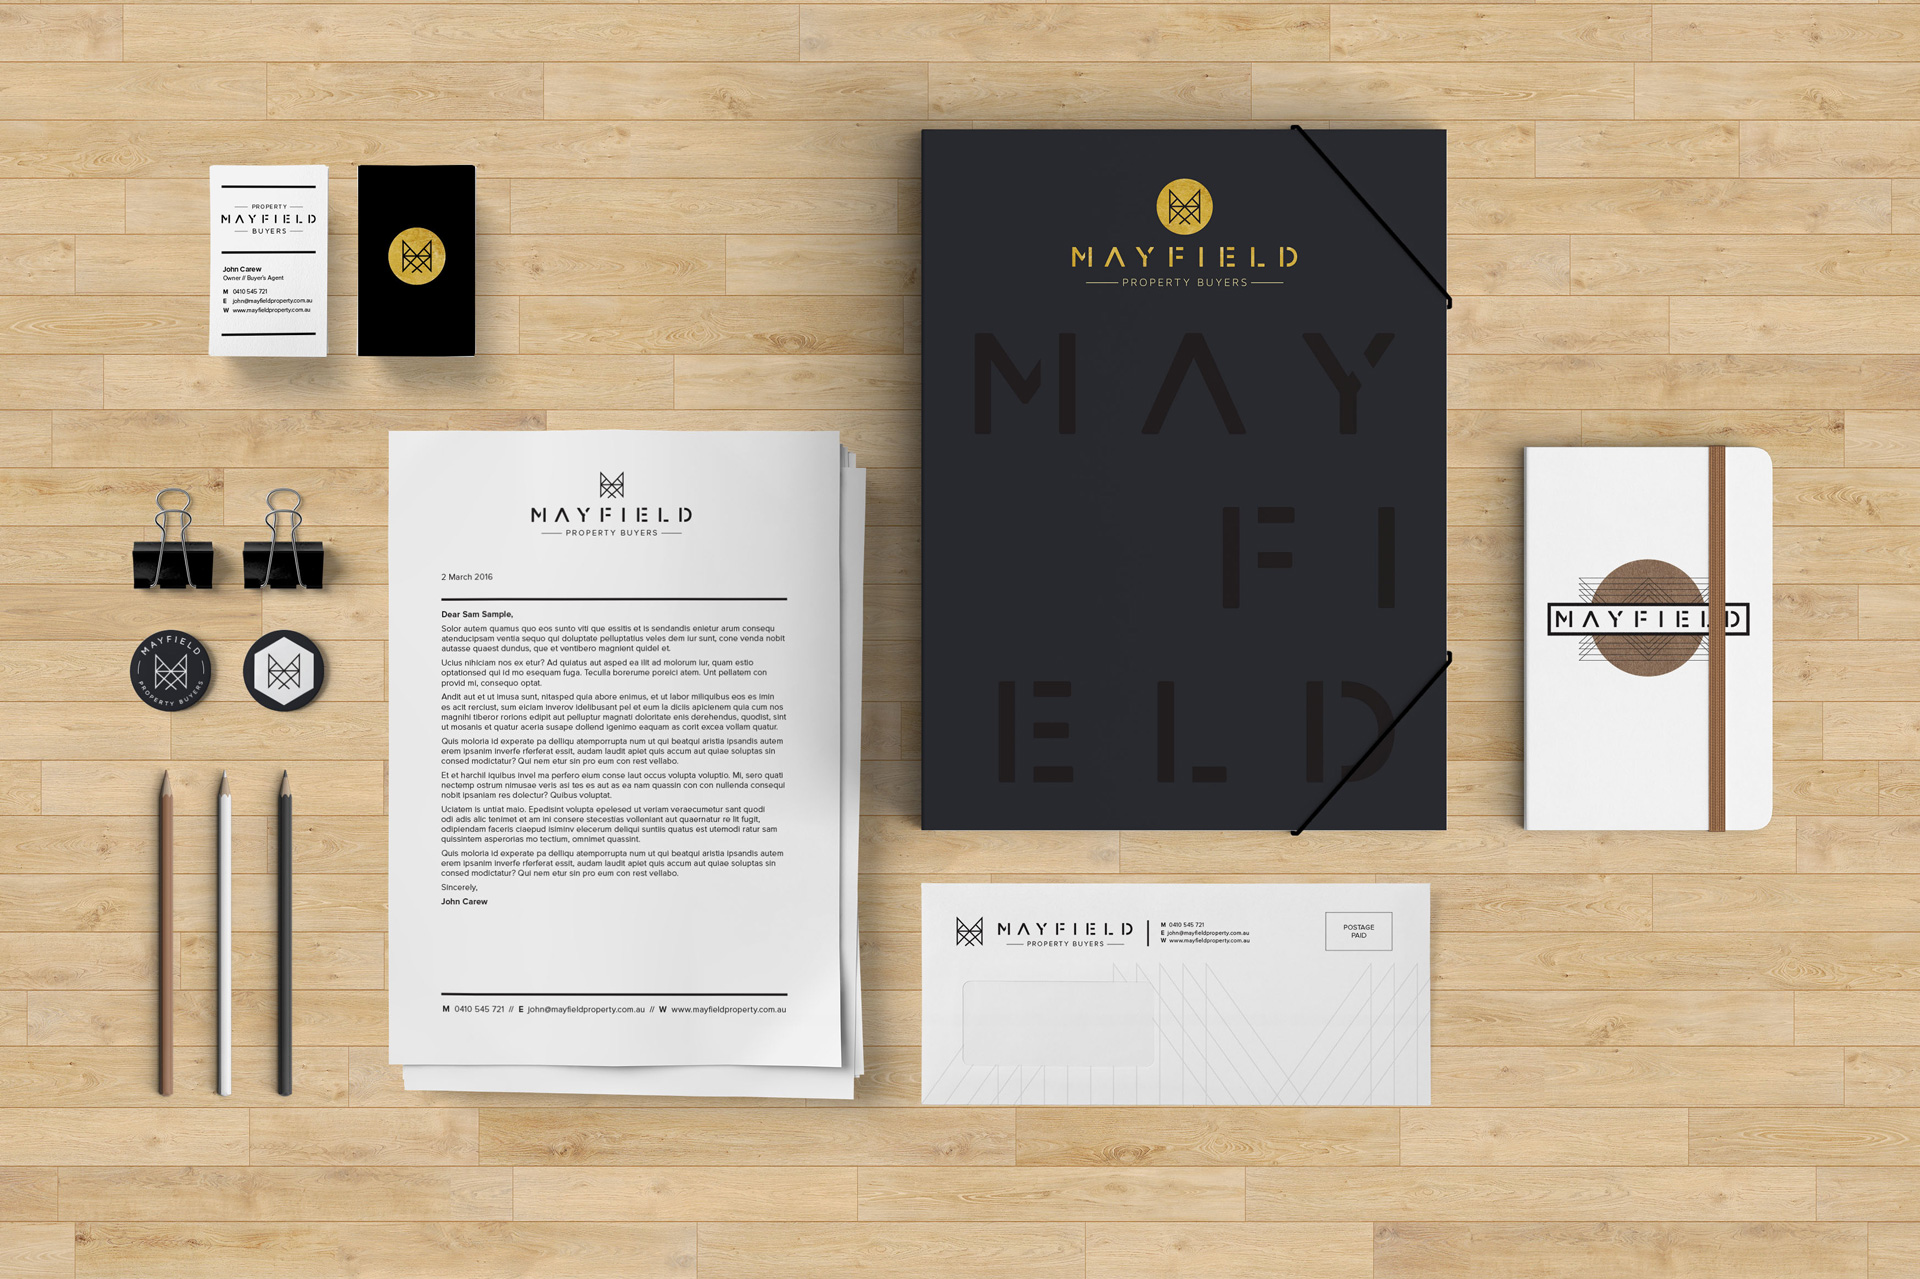 Mayfield Property Buyers Brand Stationery Suite